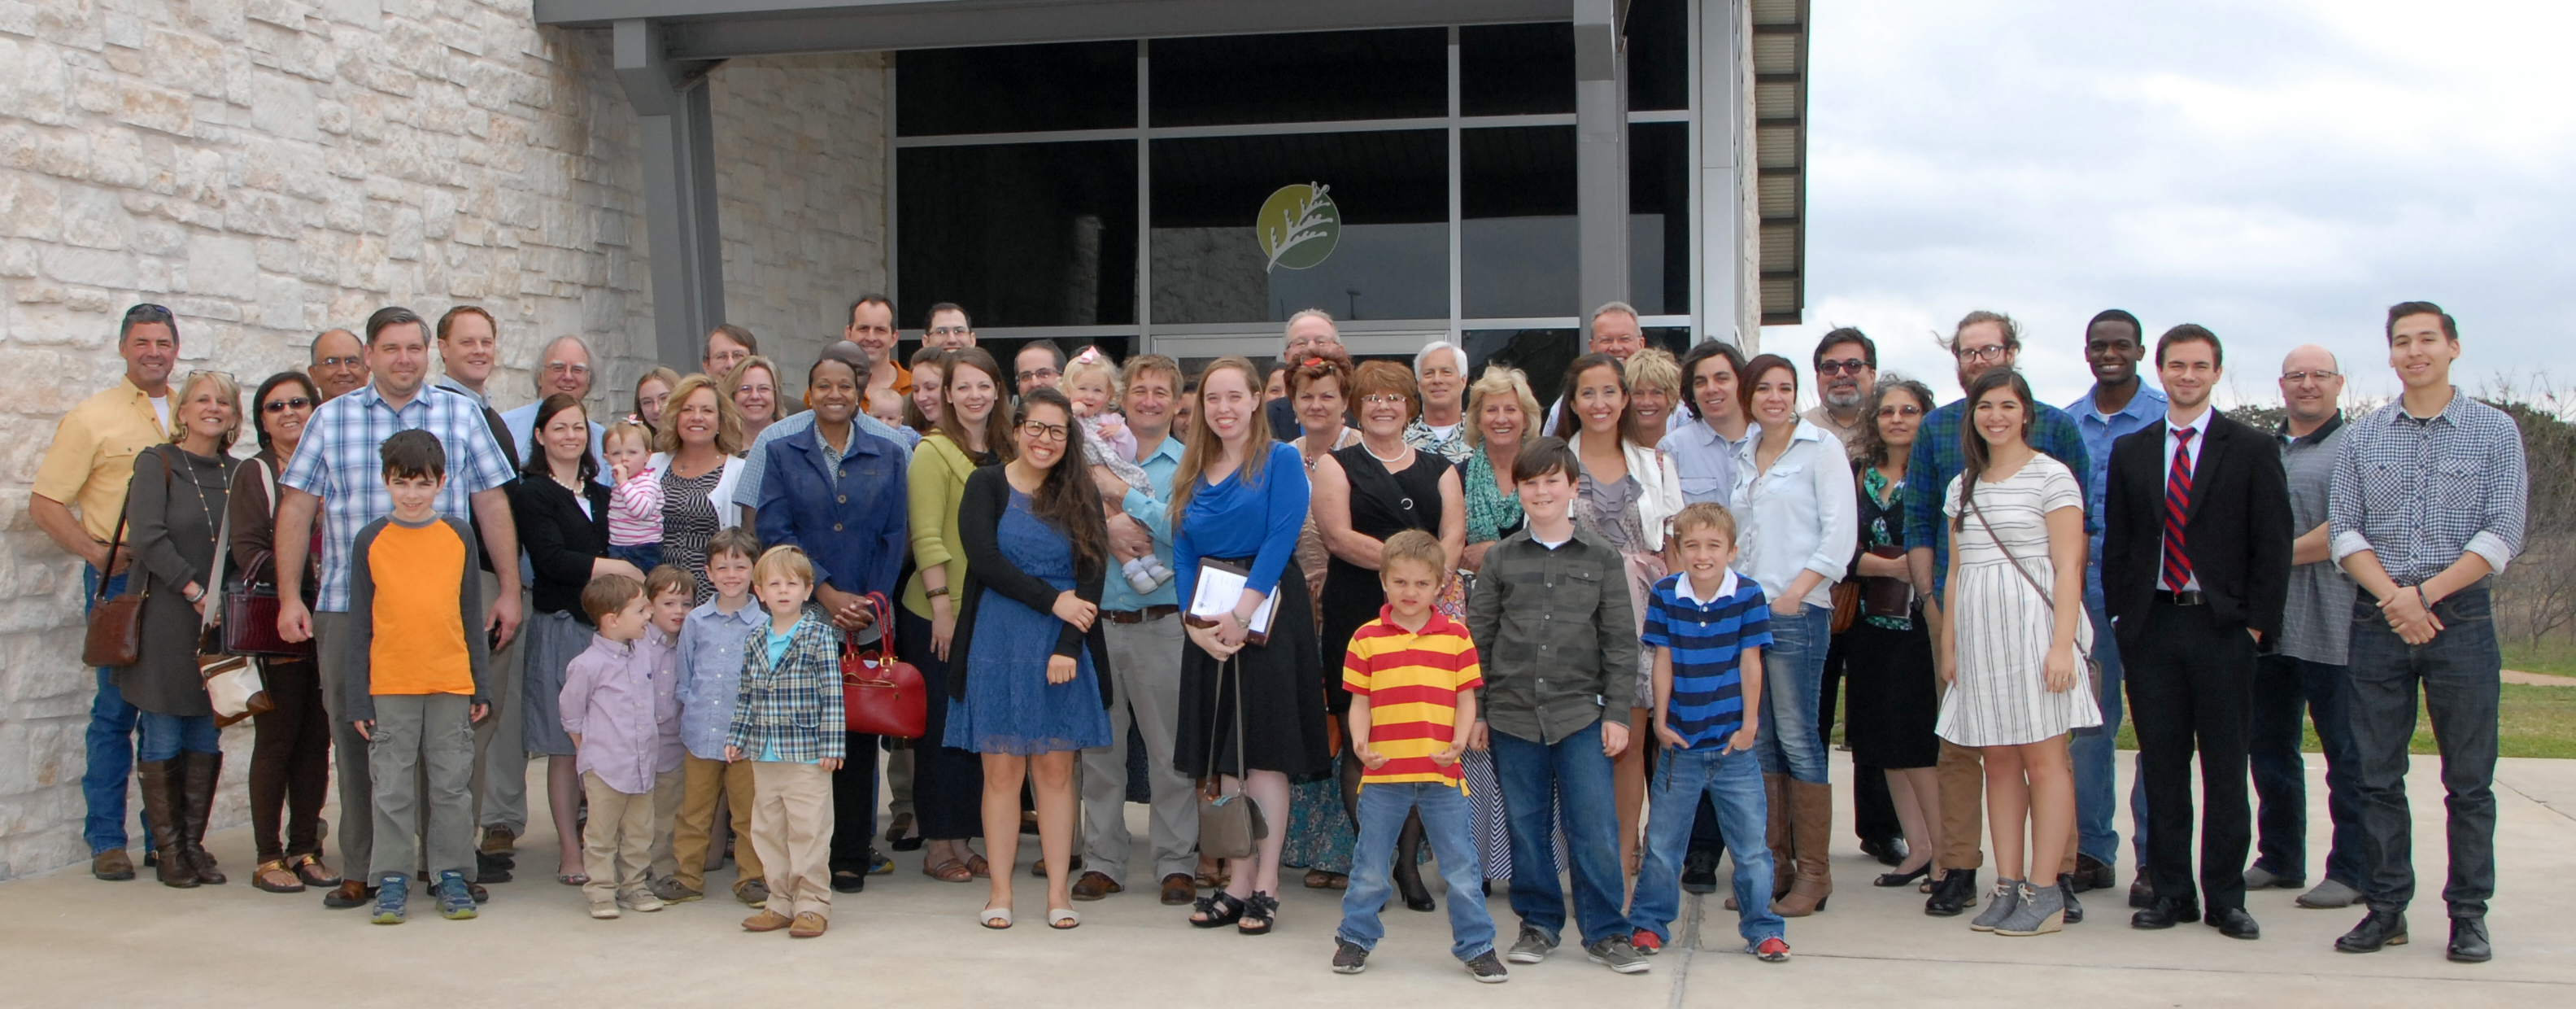 Attendees pose for a photo outside the Cedar Park Recreation Center after the first service of Cedar Pointe Baptist Church.